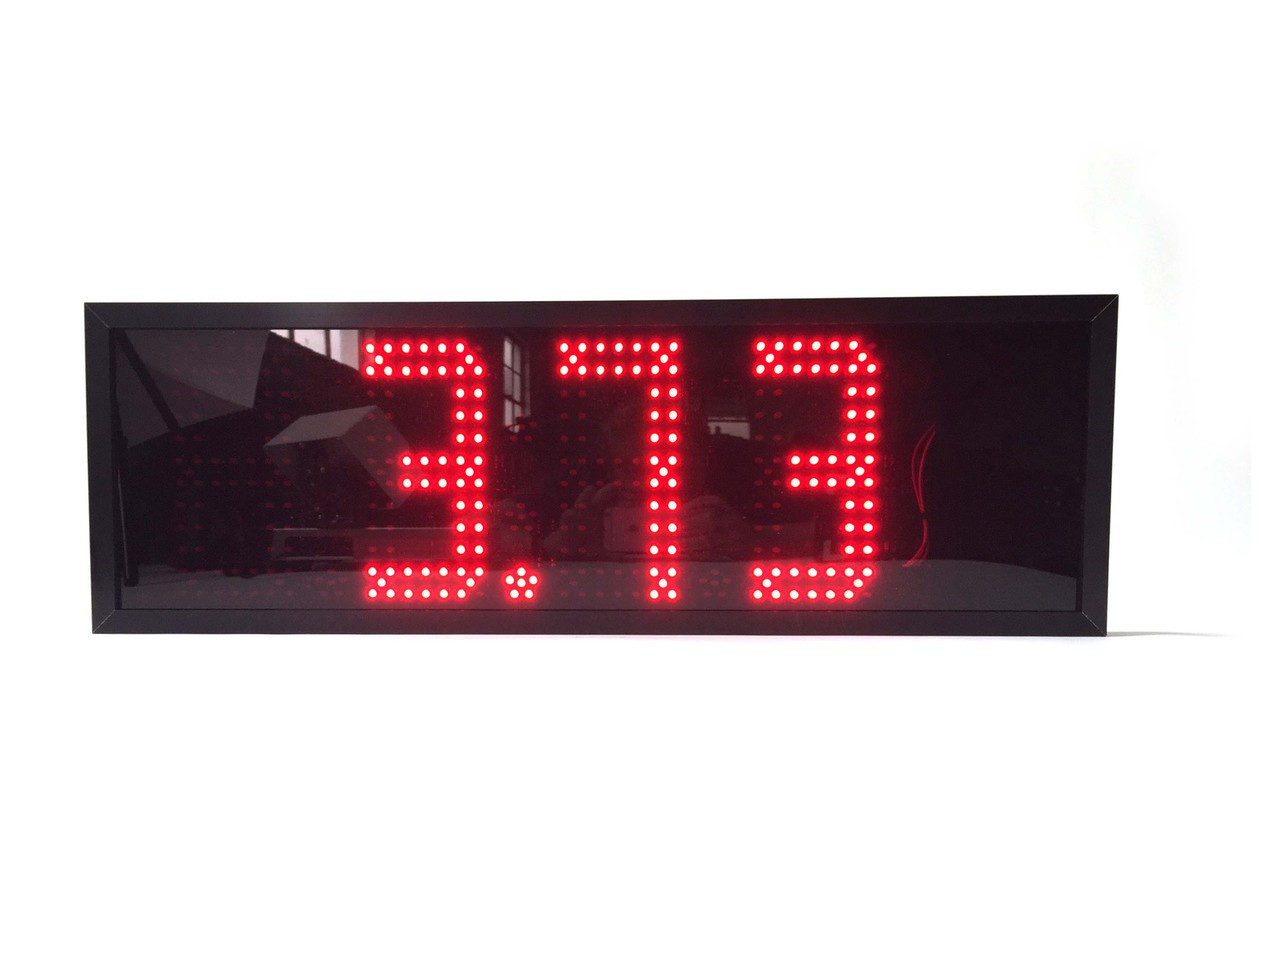 7 Inch LED Remote Display